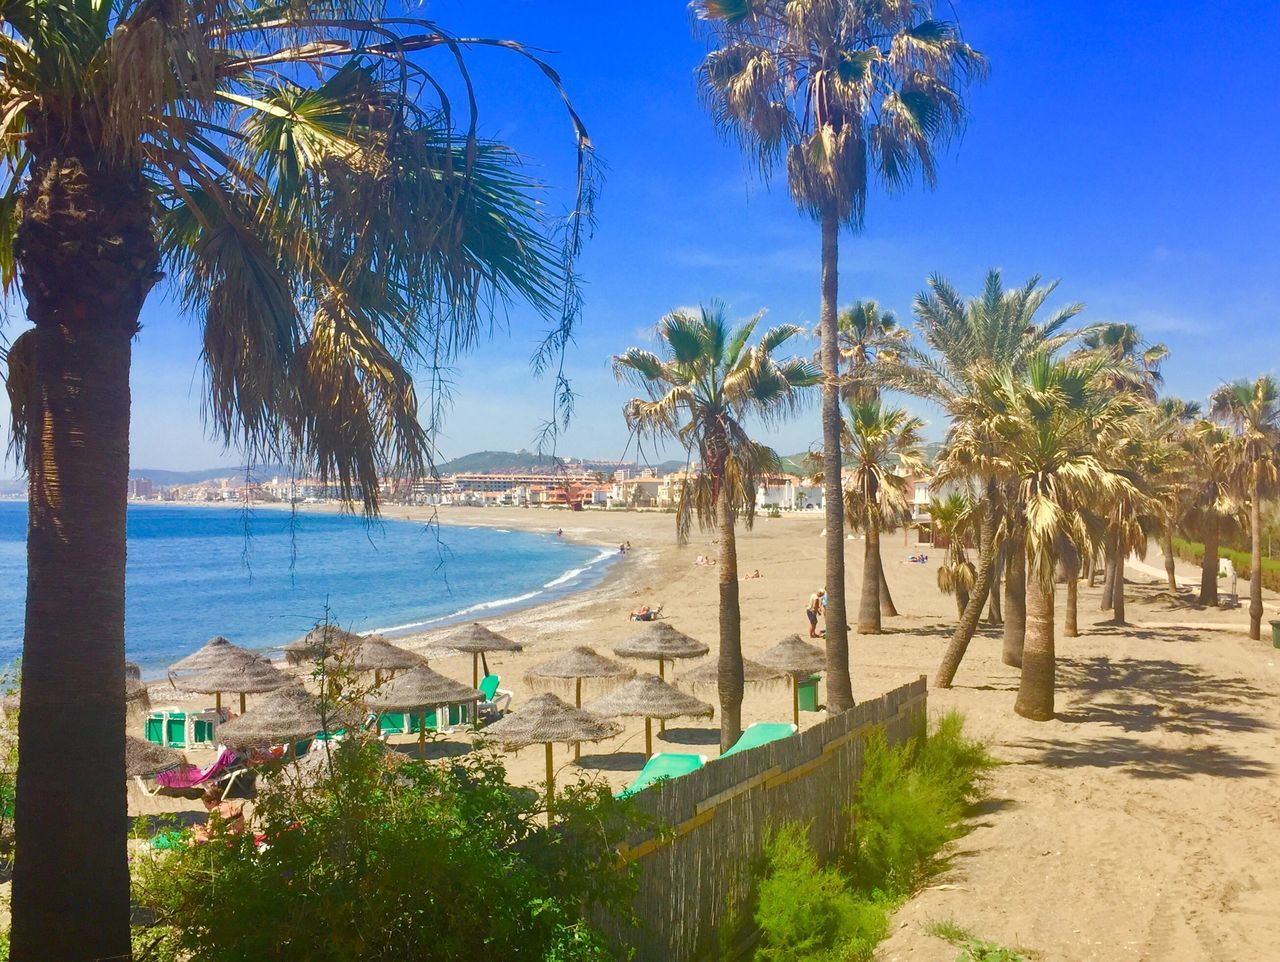 SPAIN Casares Costa Beach Palm Tree Tree Sea Water Sand Tranquil Scene Day Outdoors Nature Scenics Tranquility Beauty In Nature Tree Trunk No People Shadow Growth Blue Horizon Over Water Sky